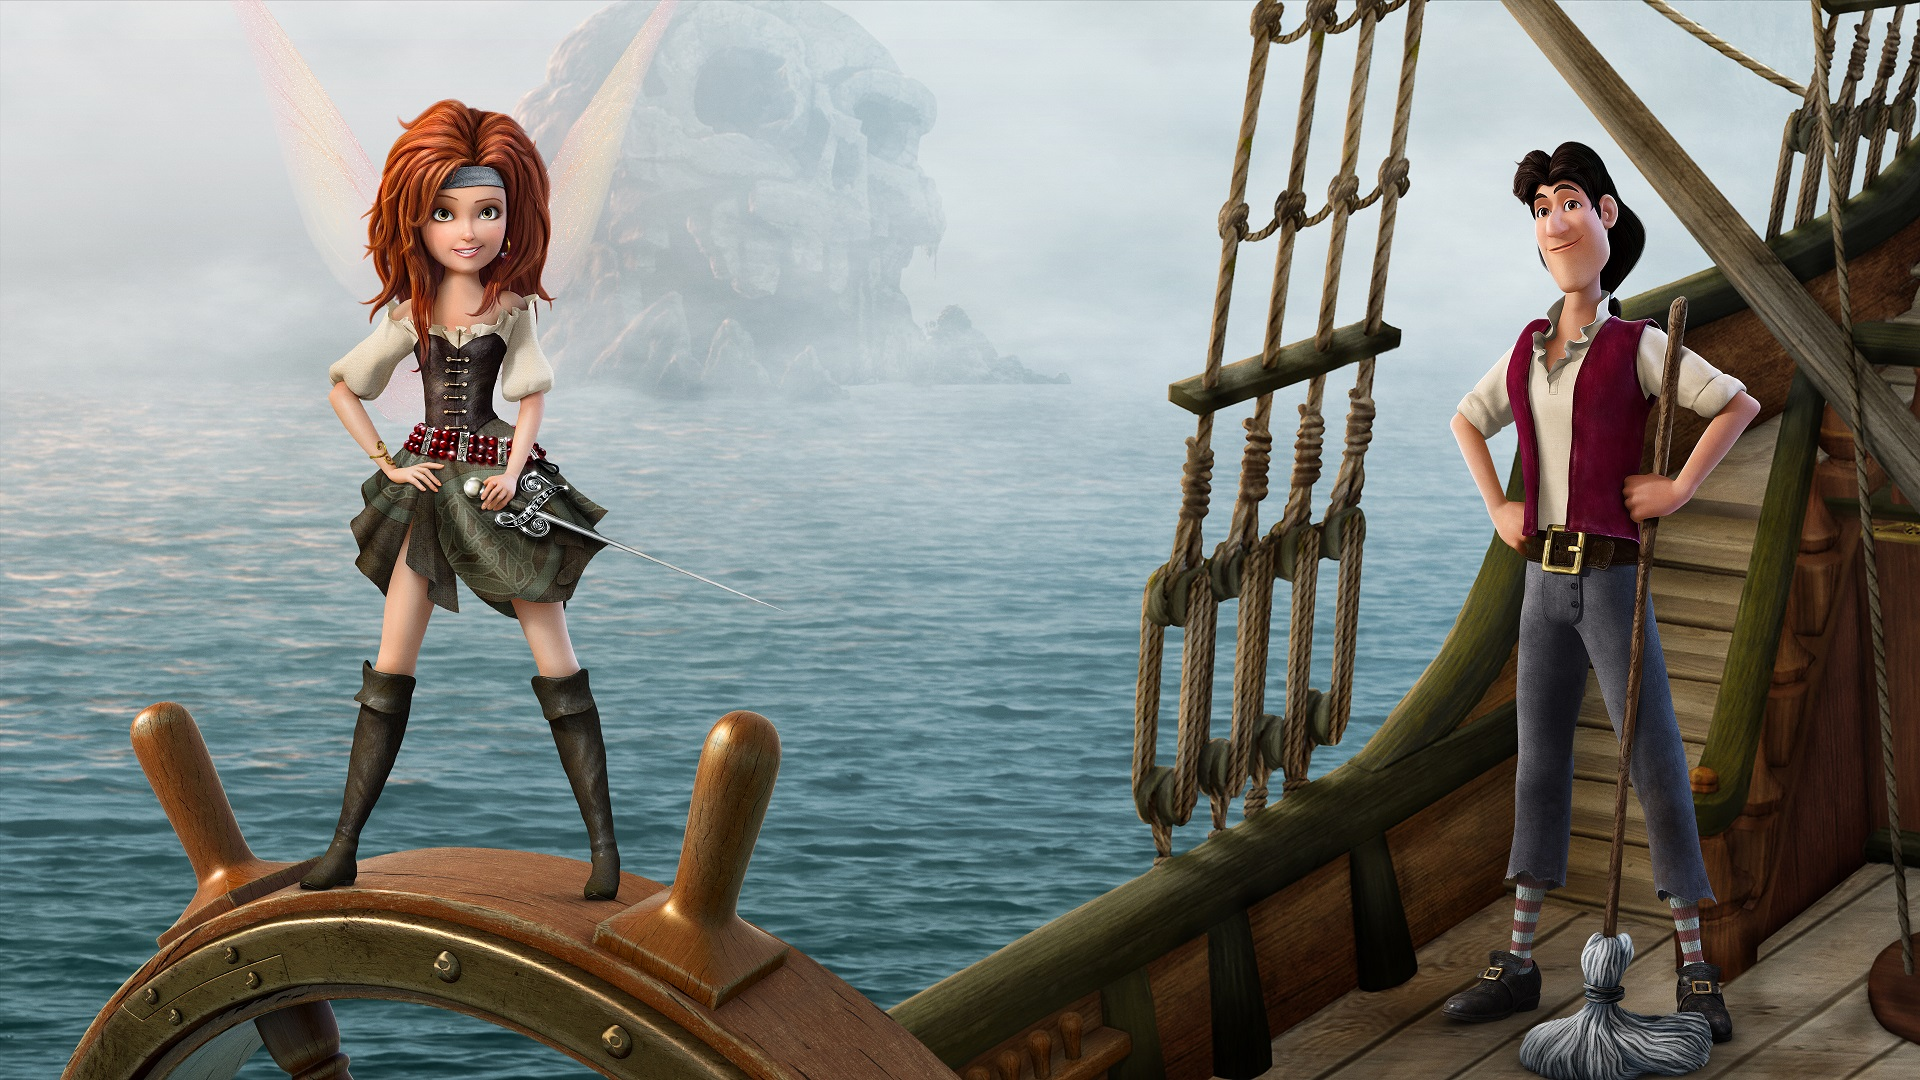 The-Pirate-Fairy-Official-Poster-Banner-PROMO-PHOTO-20SETEMBRO2013